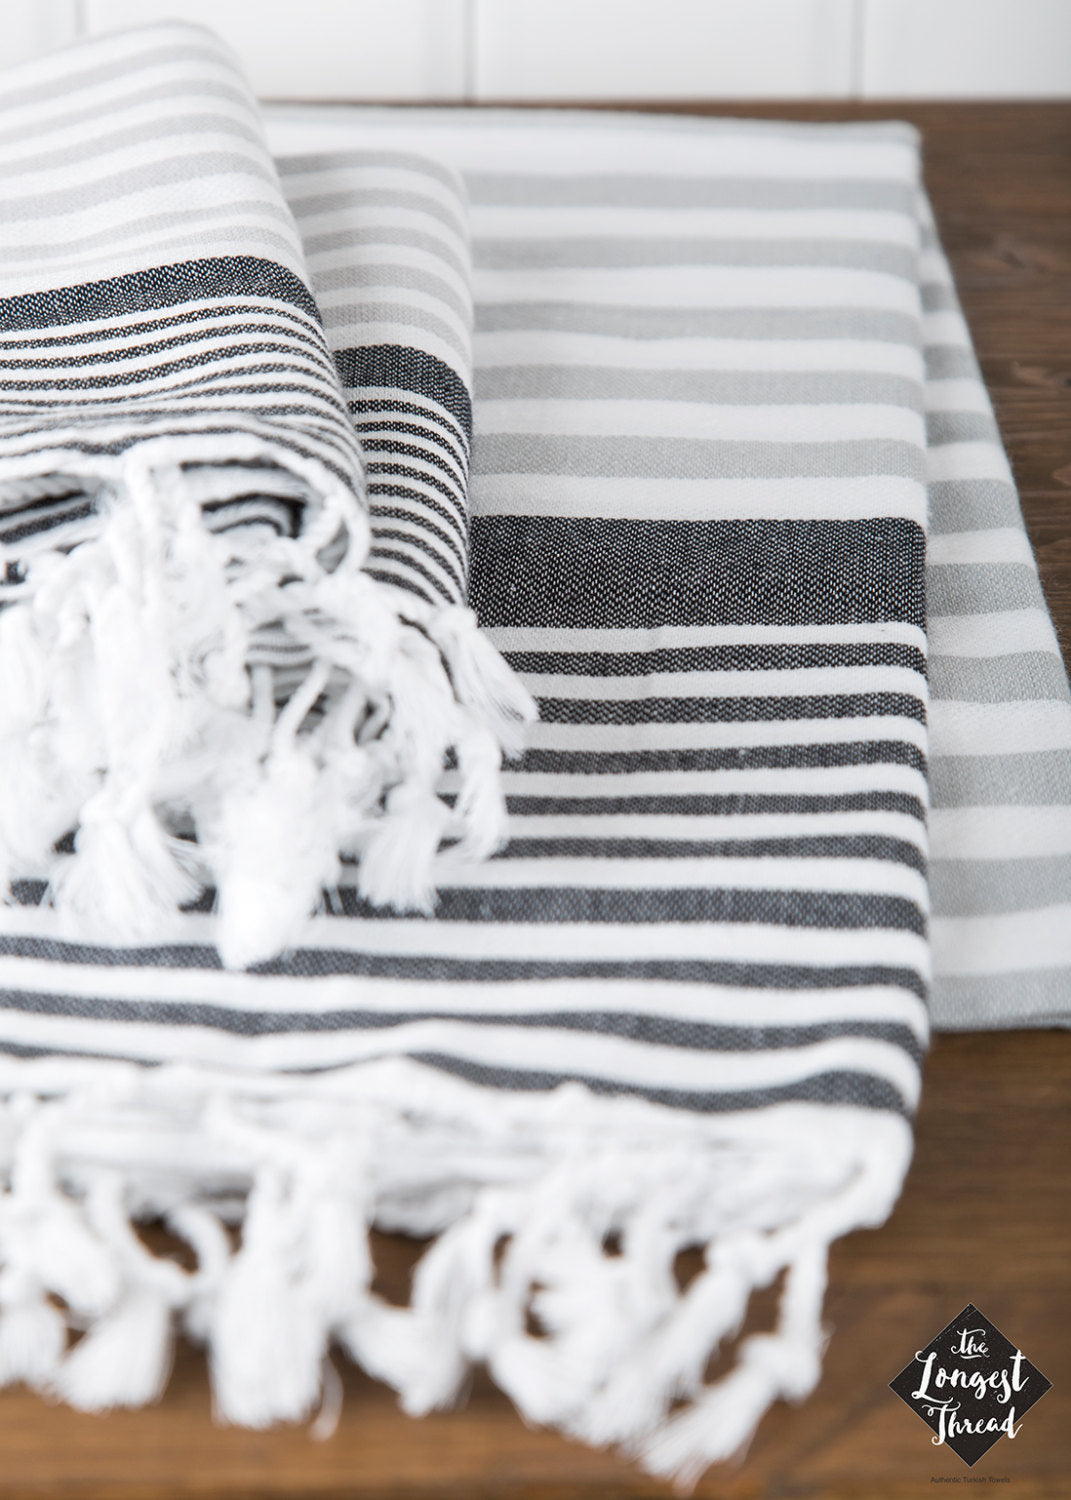 Reef Black/Gray Turkish Towel Image 3